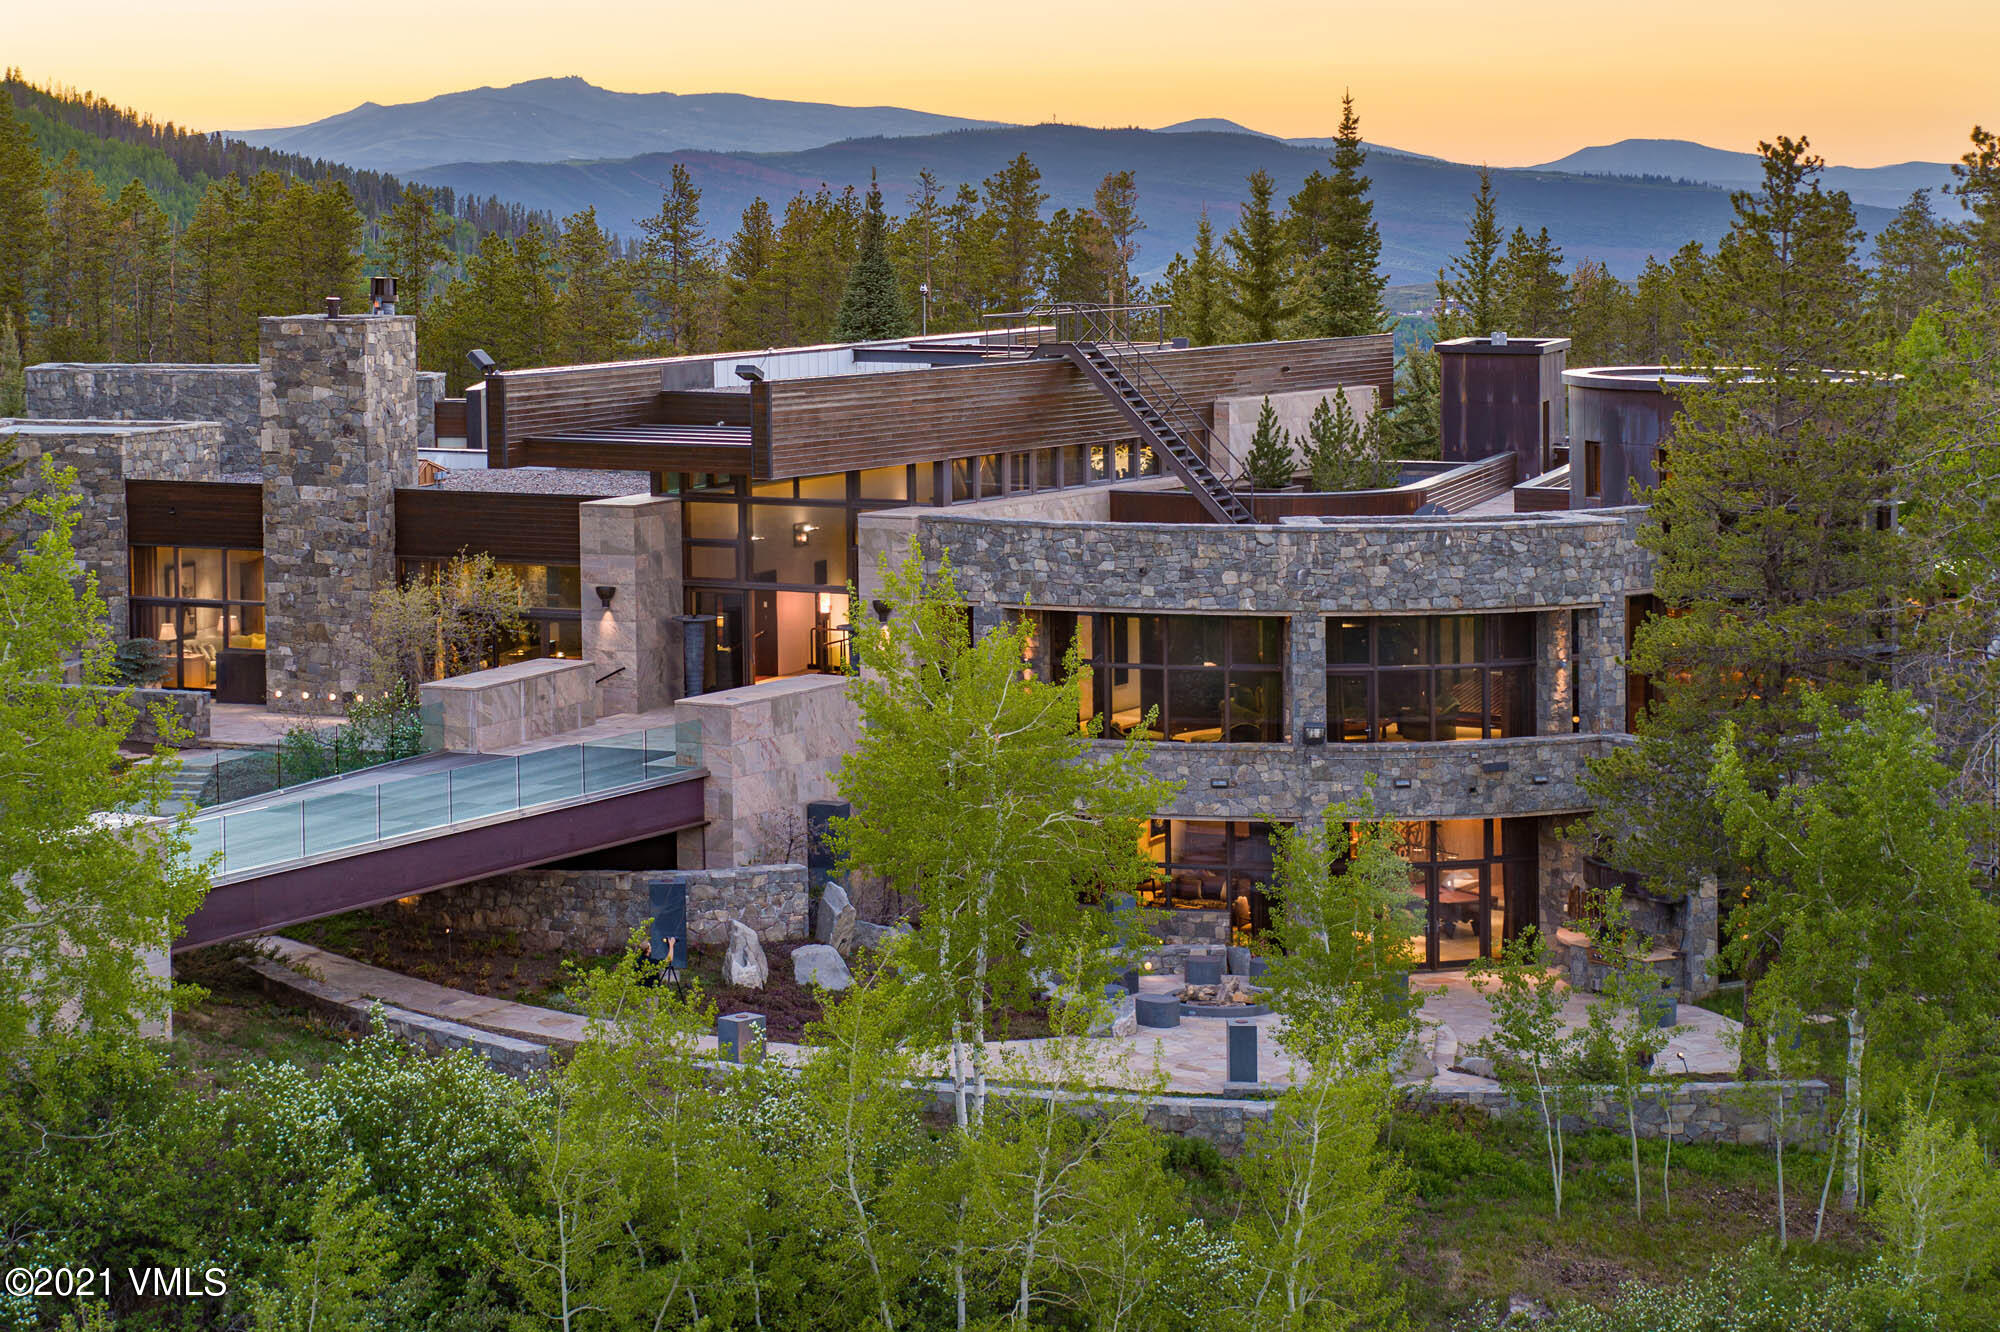 Main House- 30,350 SF- 8 beds | Coyote Lodge- 27,850 SF- 1 bed | Ridge Guest House- 5,321 SF- 4 beds | Cabin Guest House- 3,275 SF- 3 beds | Apartments- 1,335 SF- 2 beds | Car Barn, Toy Storage- 7,113 SF | Casteel Creek is one of the most unique mountain experiences in the world, a destination in and of itself. With 250 acres bordering 2 million acres of National Forest, the estate bestows an ambiance of seclusion within the Rocky Mountains while, in fact, is located within the heart of the Vail Valley. World-class skiing, shopping, restaurants, and entertainment in Vail and Beaver Creek are minutes away should one ever wish to leave Casteel Creek's own adventures... snowmobiling, cross-country skiing, ATV explorations, mountain biking, hiking, shooting, fly-fishing, rock climbing and more creature comforts than one could imagine. Meticulously appointed, the estate affords a life without compromise, where grand entertaining, privacy and convenience are paramount. A scenic drive through the forest culminates over a dramatic million dollar bridge that sets the perfect tone upon arrival to the main house. The residence features a 200-ft steel viewing bridge that suspends mid-forest for taking in views of the Sawatch Mtn Range and sounds of the creek below. Providing 8 en suite bedrooms plus ice cream parlor, theater, cowboy saloon, spa, exercise facility and multiple outdoor entertaining areas. There is also a 27,000+ SF entertainment venue with climbing wall, pool, shooting range, catering kitchen, formal living and dining, teppanyaki dining area, bar and game room plus indoor fieldhouse. Outside is a trout stocked pond, soccer field, patios, hot tub, playground. To complete Casteel Creek are 2 guest houses, 2 apartments, western town center with sheriff's office, car barn, 17 snowmobiles, 3 ATVs, snow plows for grooming miles of trails.  Casteel Creek enjoys ease of access to Vail Airports or Denver International Airport. mls.CasteelCreek.com Casteel Creek enjoys eas